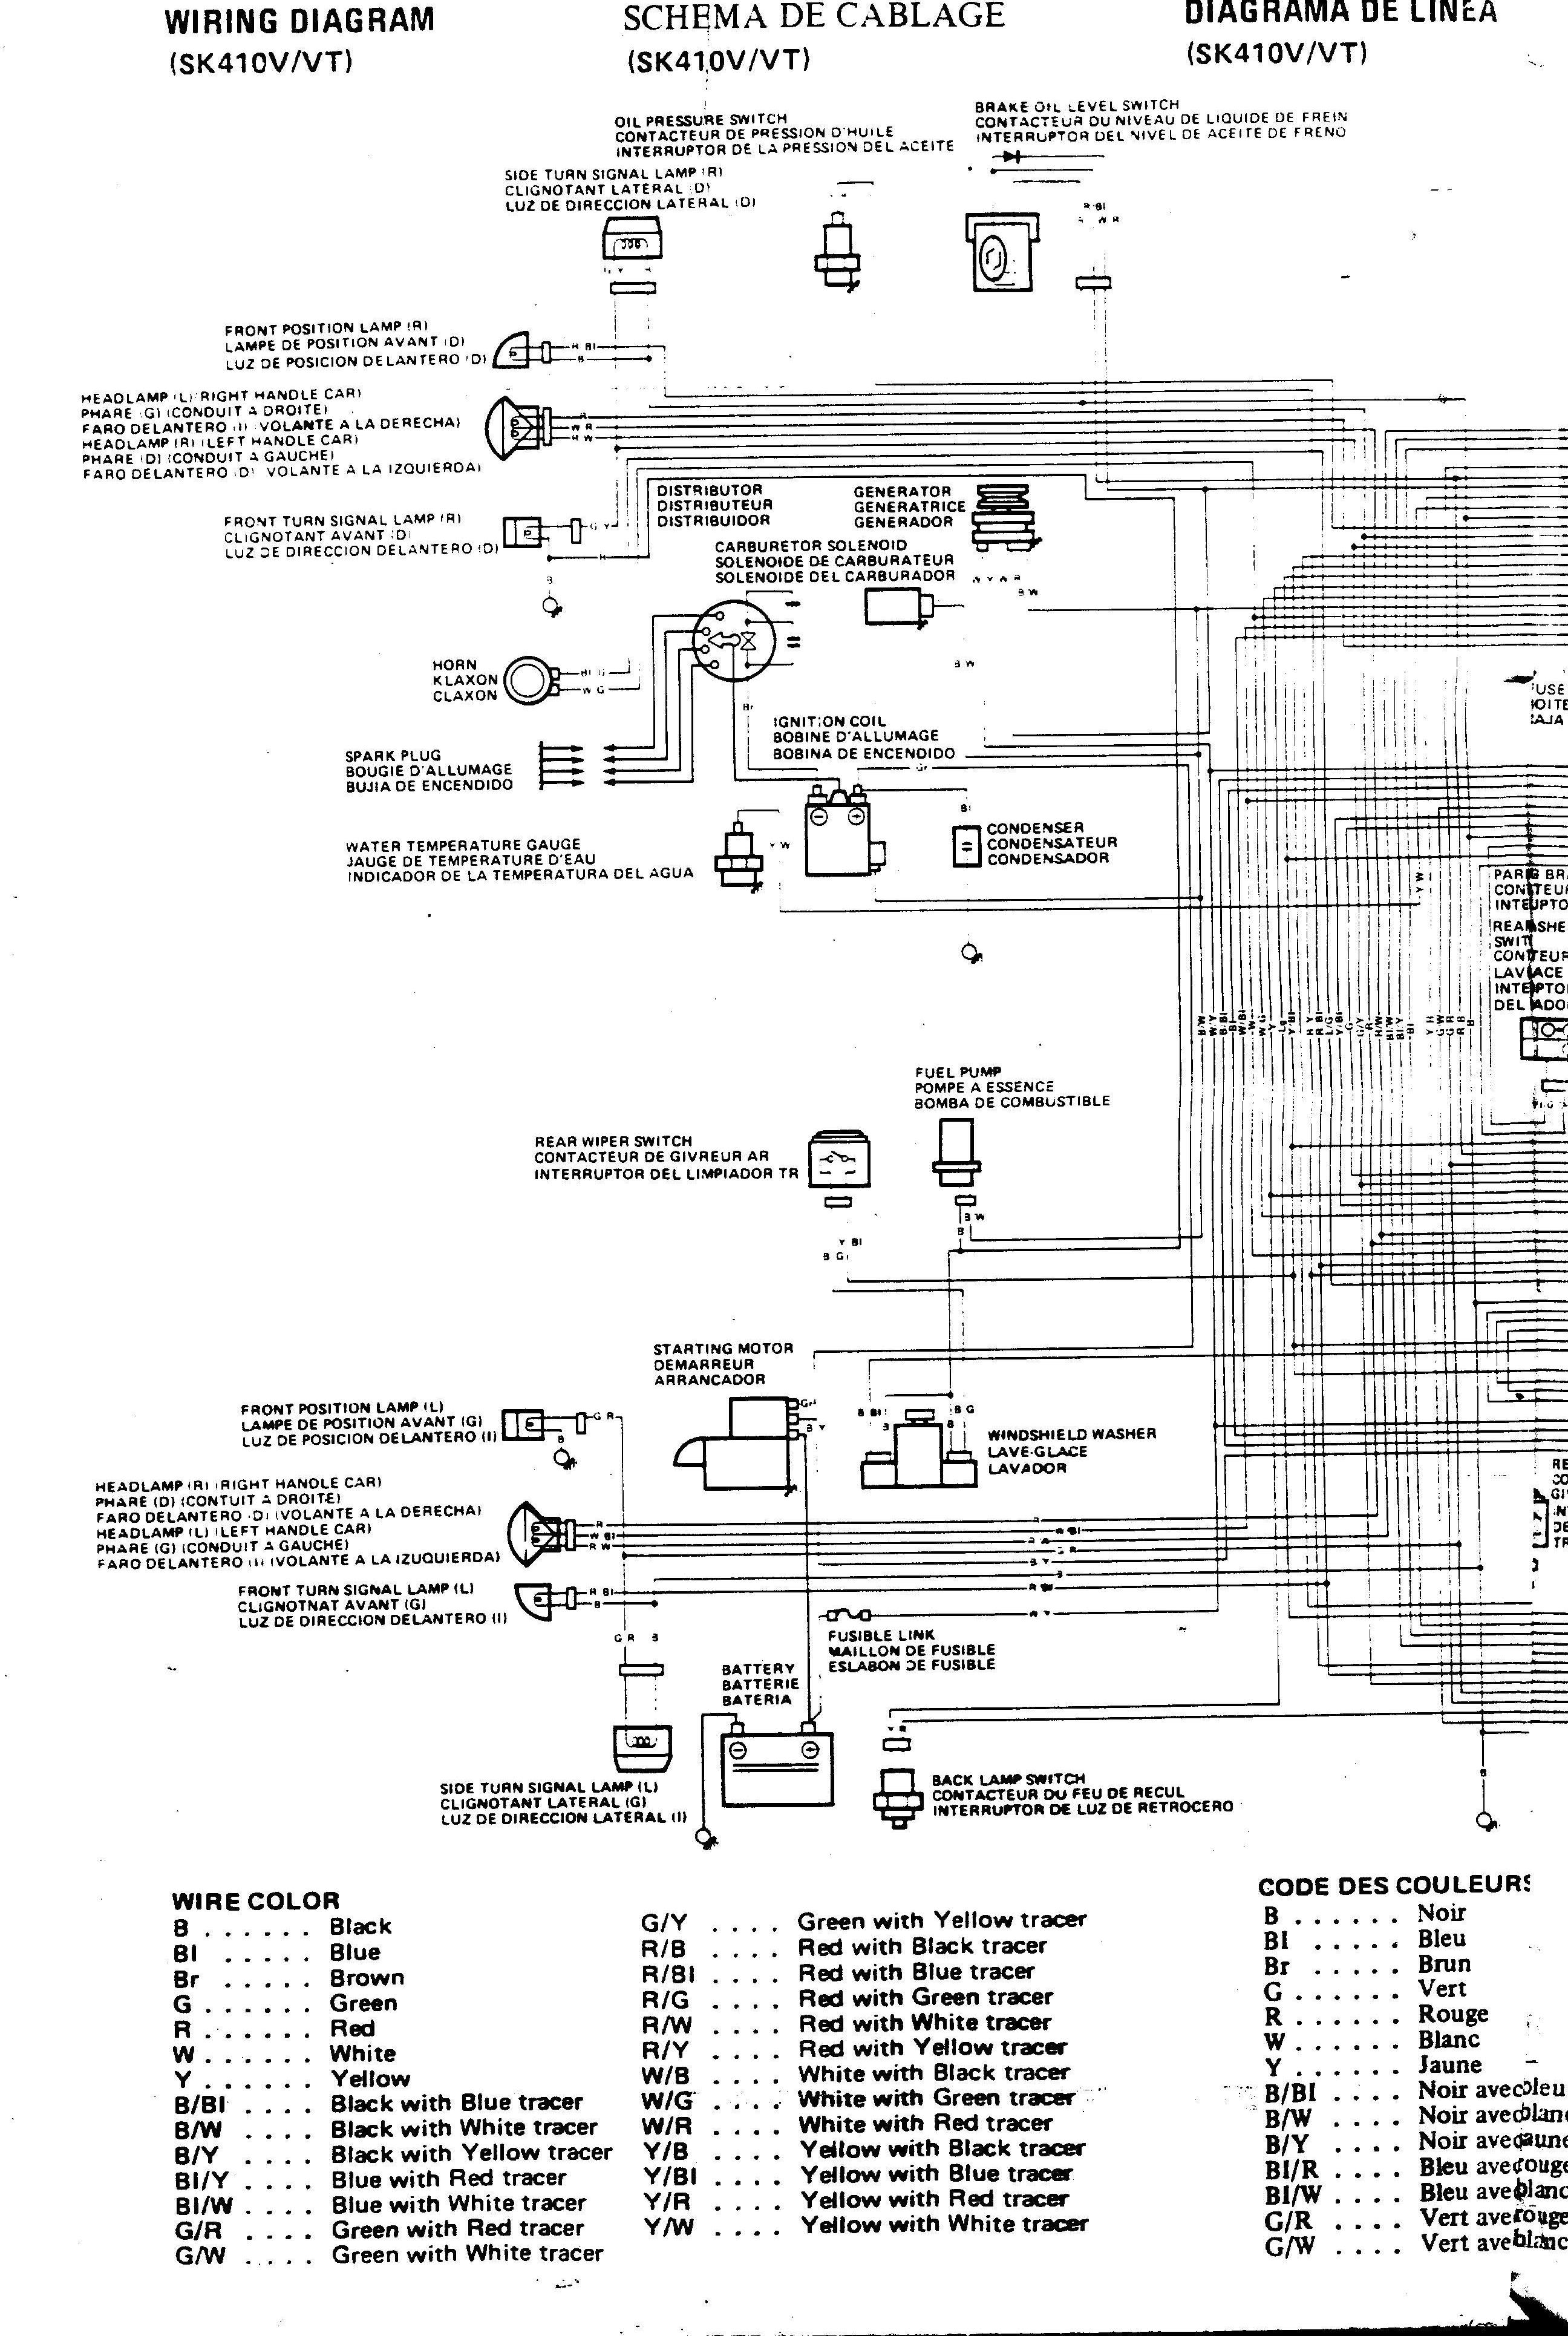 p b wiring diagram with Preview on 5sj5c Hyster Forklift Fault Code Screen 168 4 also 5M 2 In 1 Audio Video Power Cable CCD Security Camera BNC RCA CCTV DVR Wire Cord P 1023675 likewise Esquemas Elcticos P200e likewise Cat 5 Wiring Diagram For Phone together with 318489004876011499.